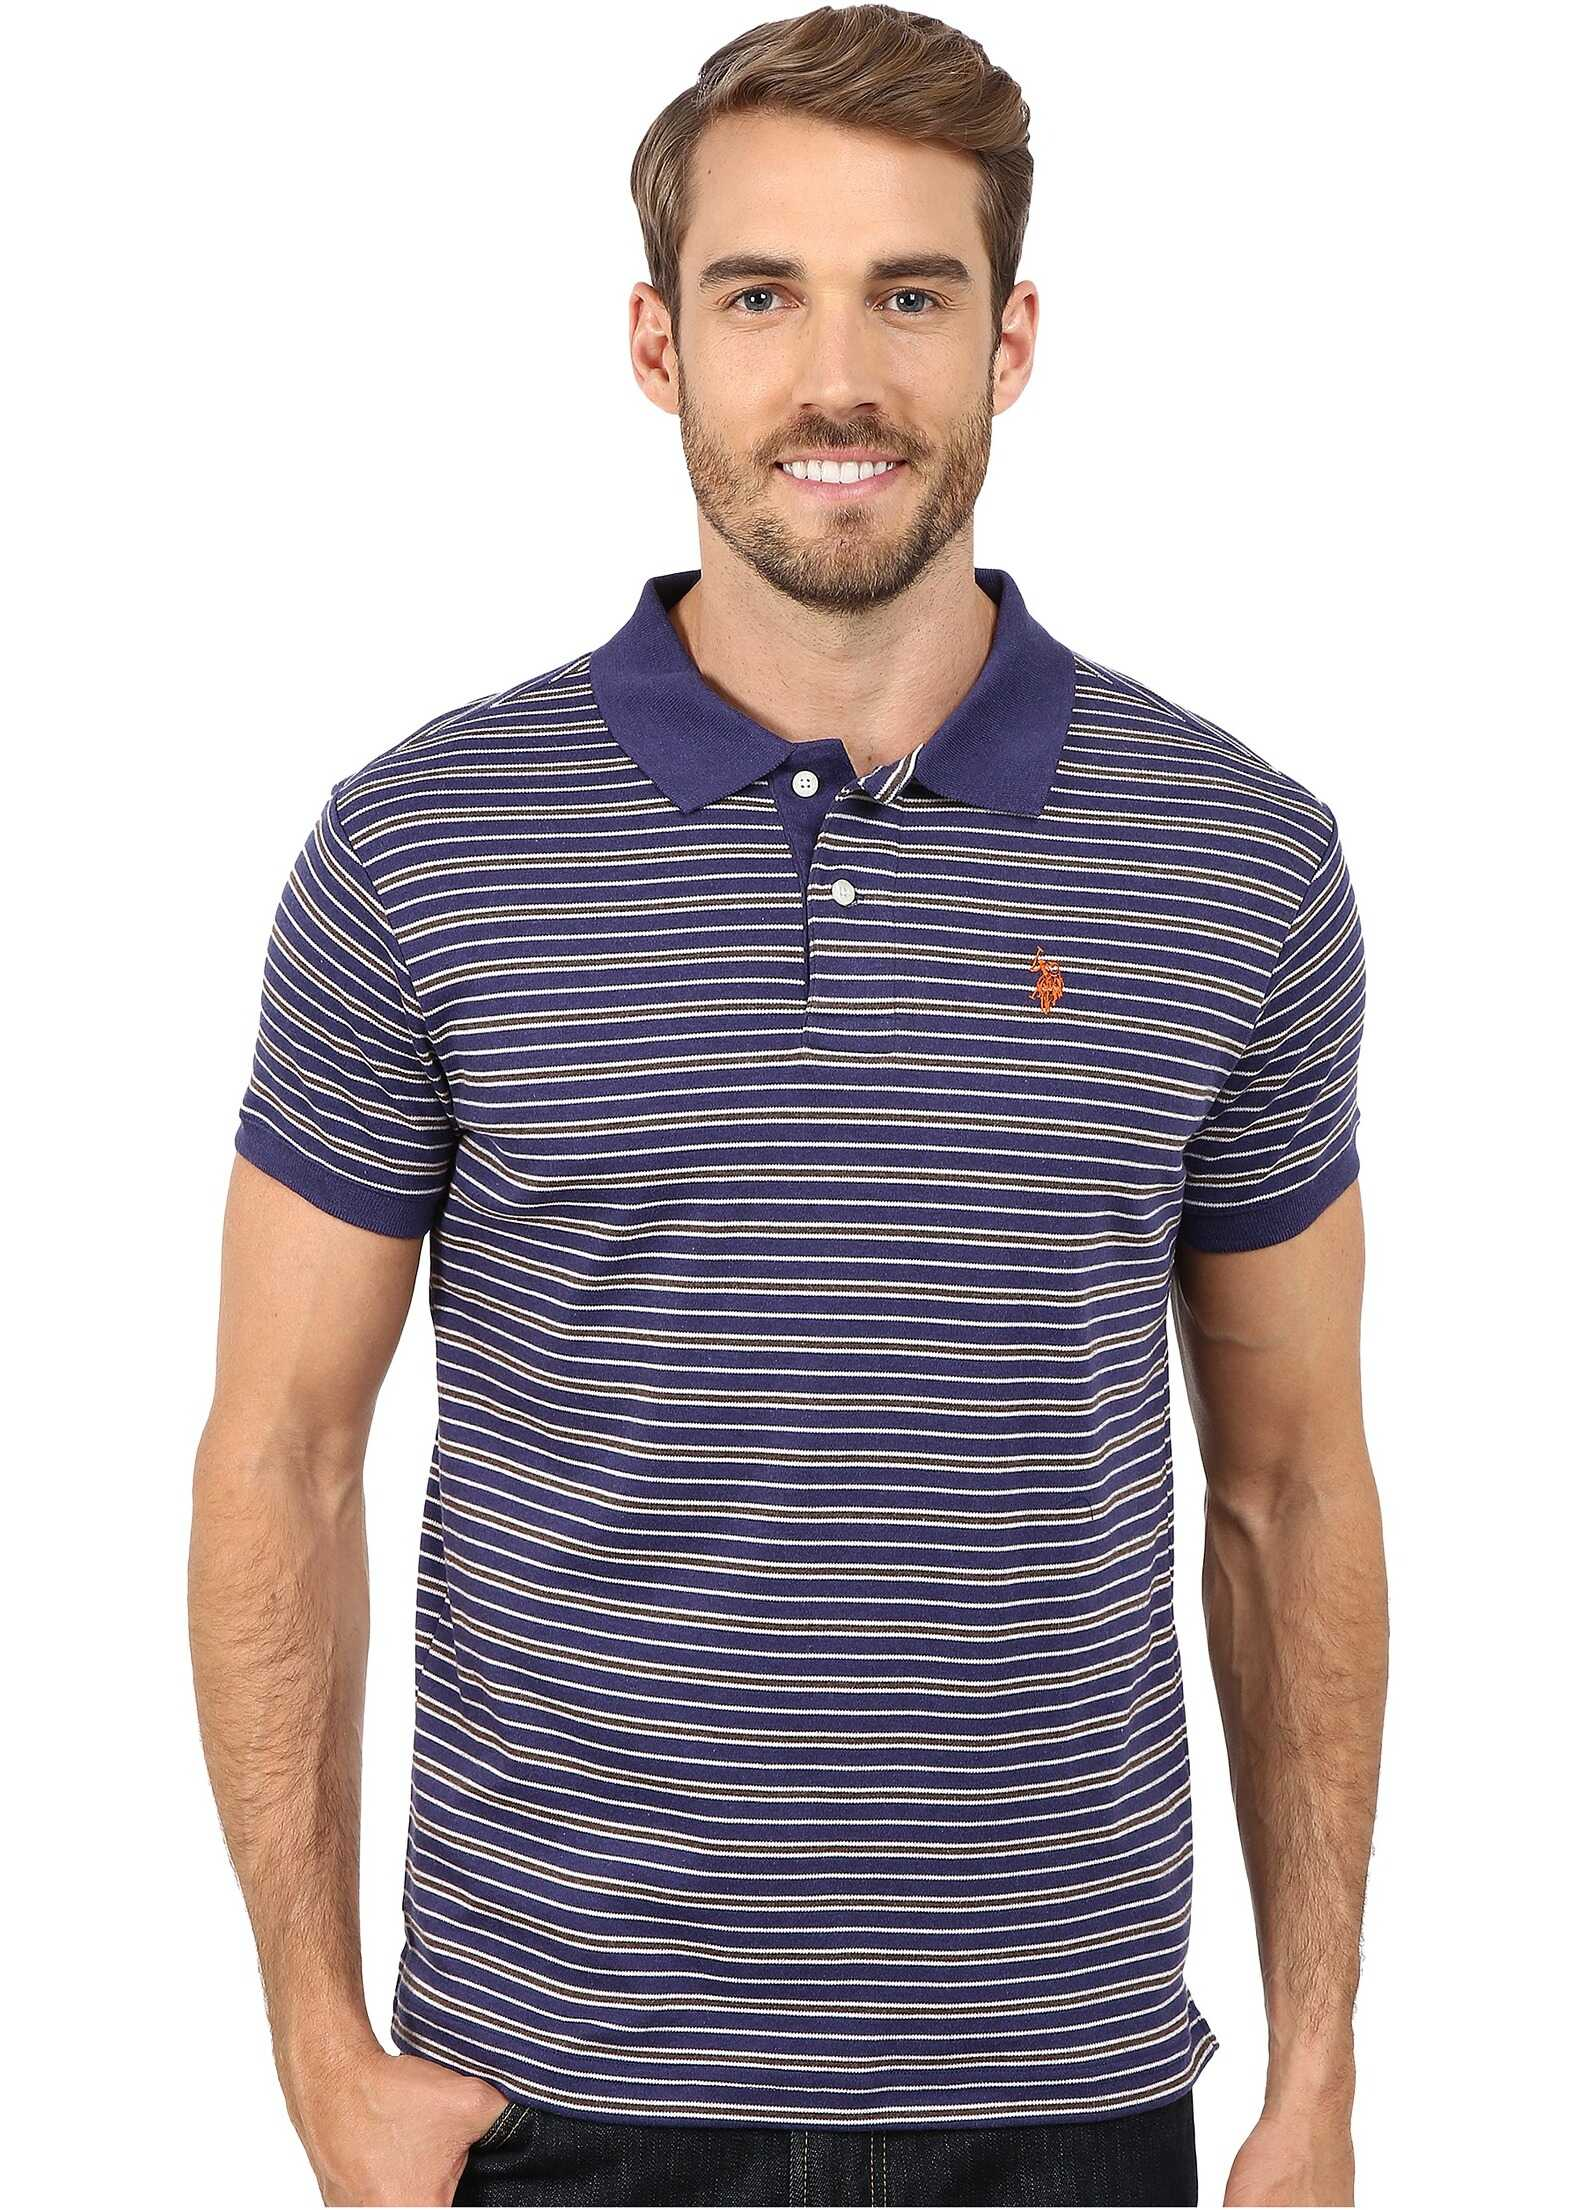 U.S. POLO ASSN. Feeder Striped Interlock Polo Dodger Blue